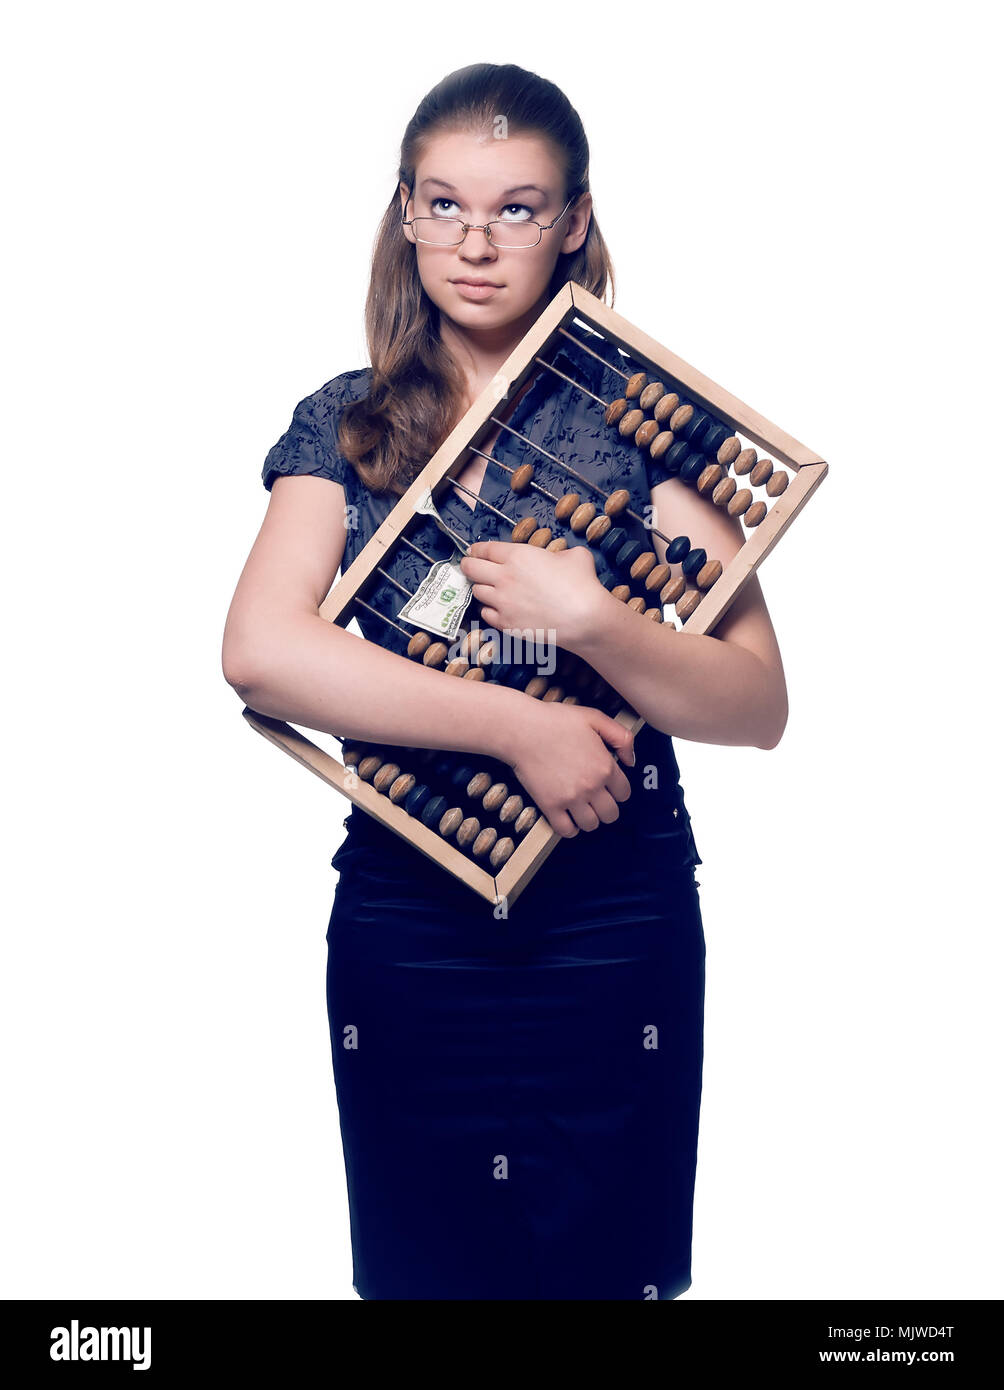 girl pressed her to his chest wooden abacus and money - Stock Image